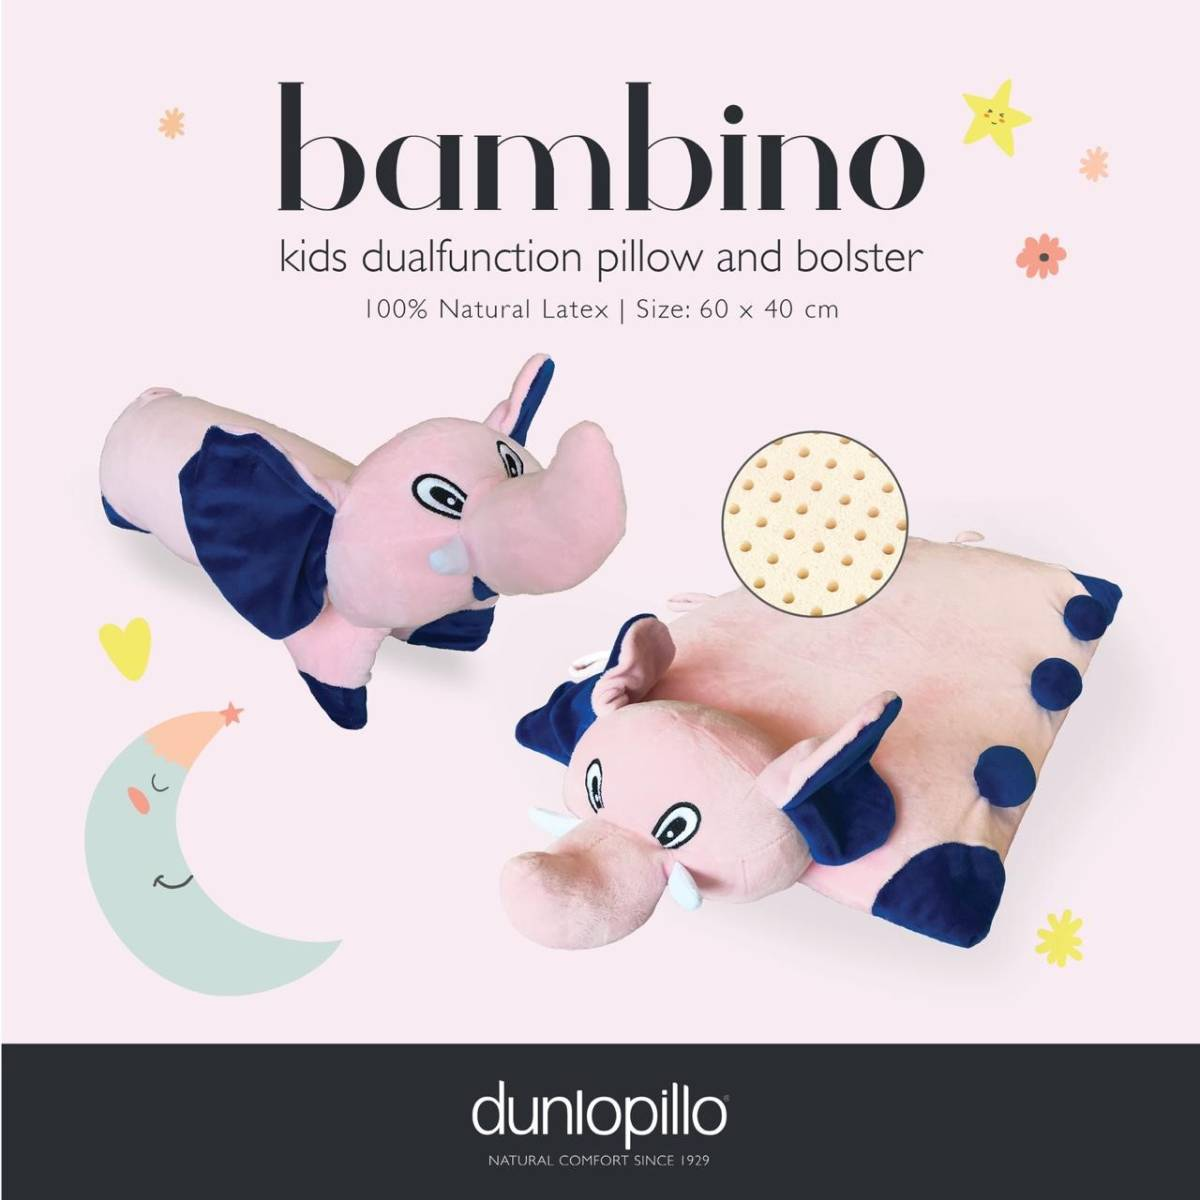 Dunlopillo Bambino Latex multifunction 2 in 1 (Bantal Guling)2